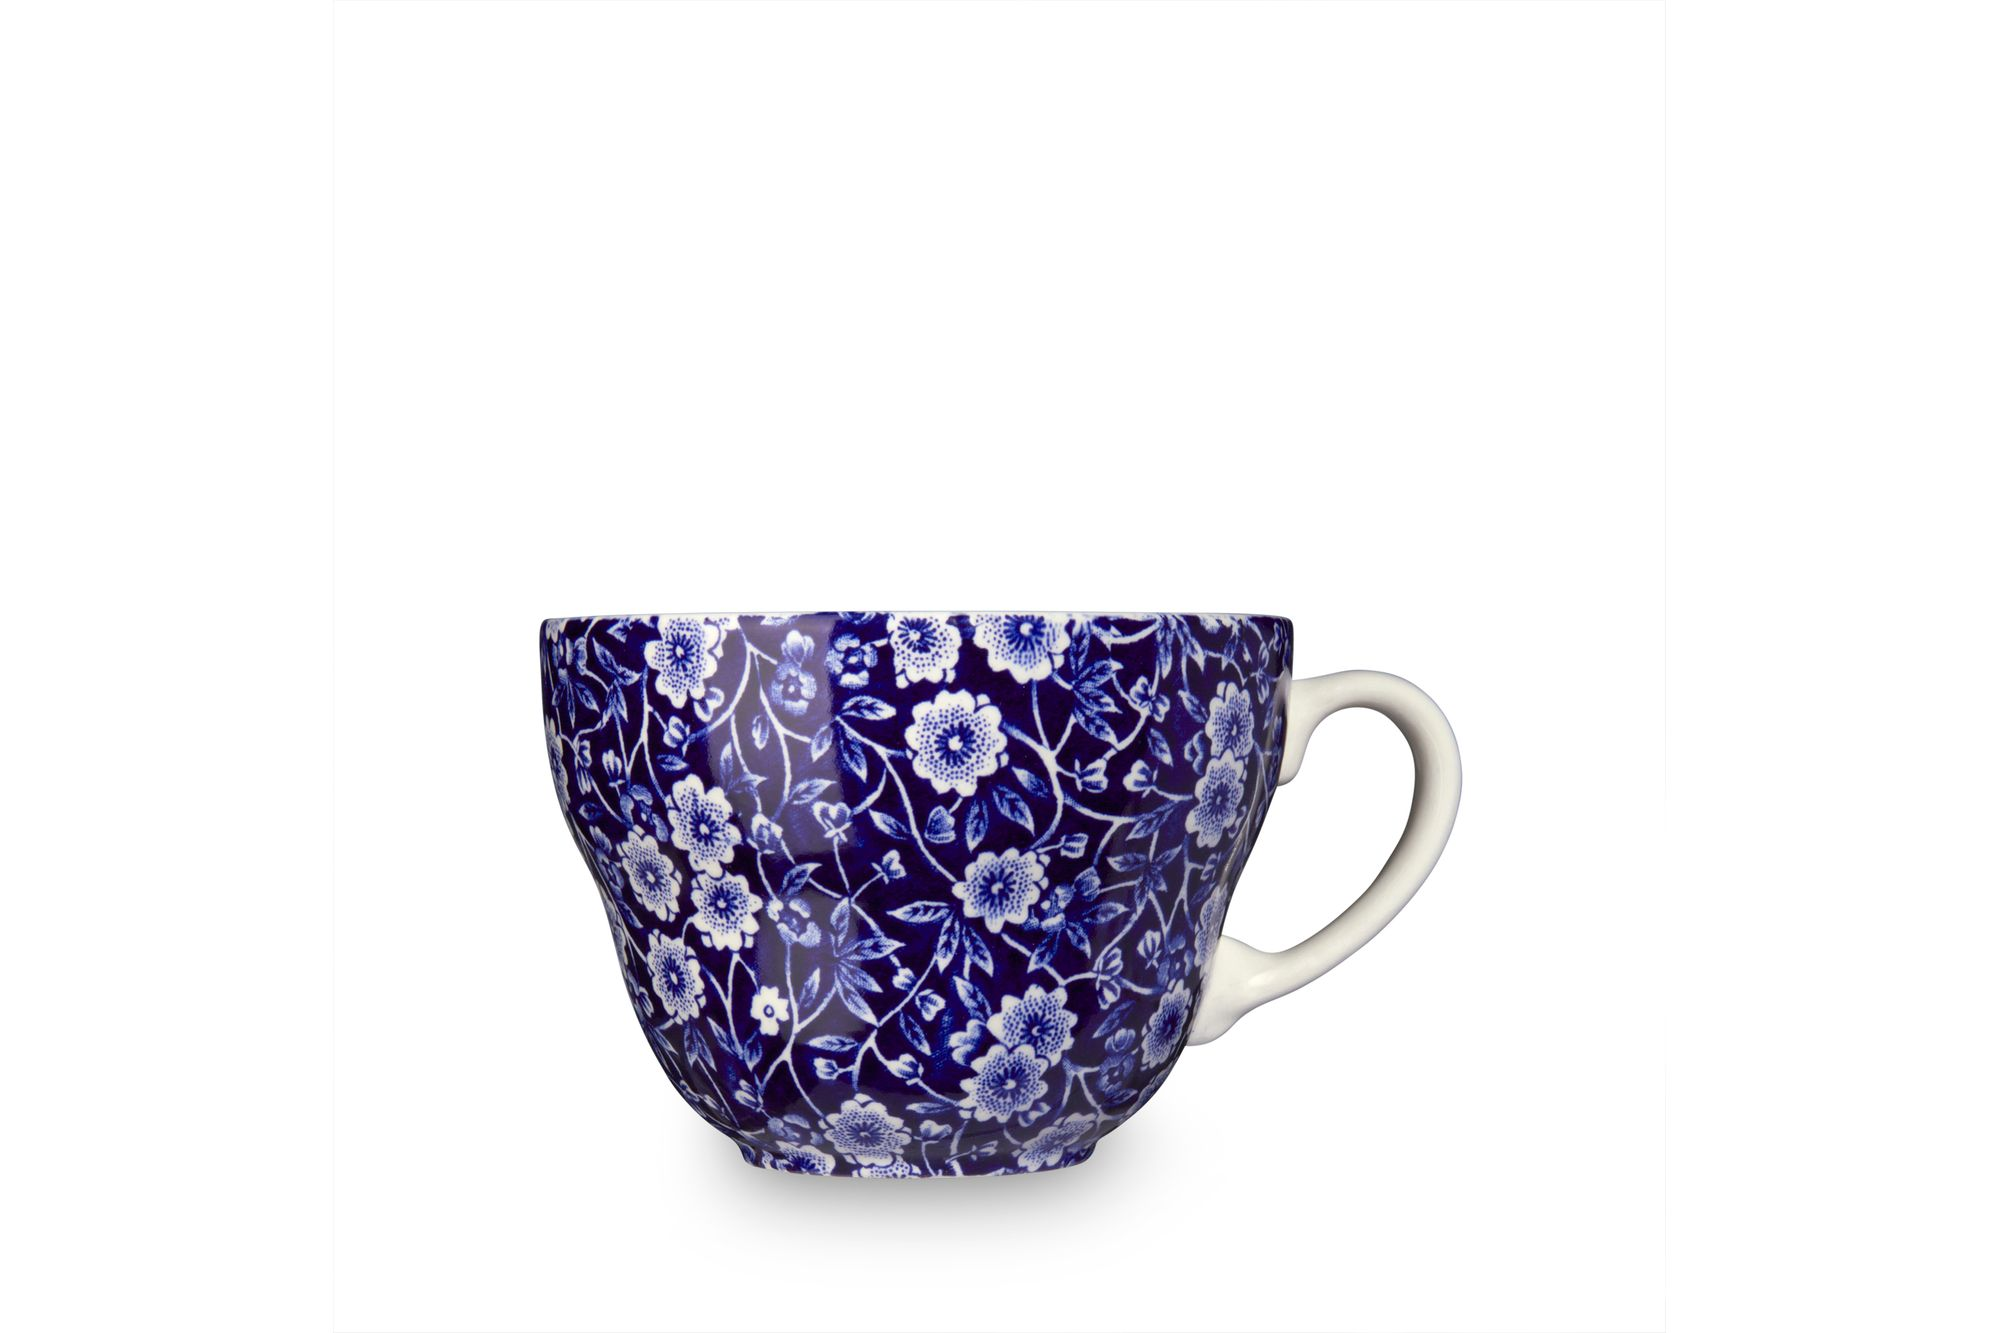 "Burleigh Blue Calico Breakfast Cup 4 3/8 x 3"" thumb 1"